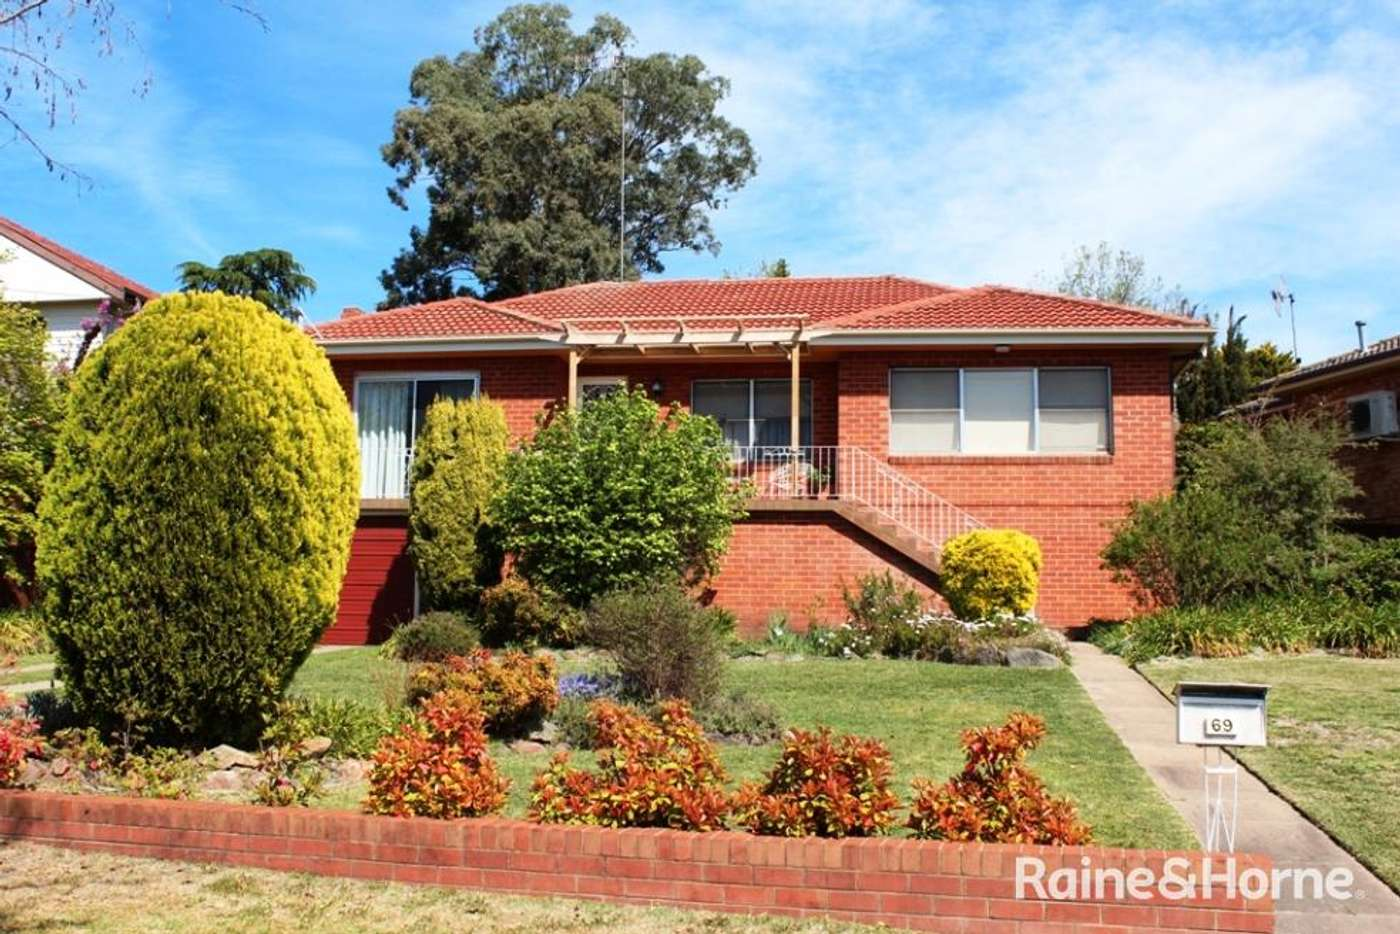 Main view of Homely house listing, 69 Esrom Street, Bathurst NSW 2795